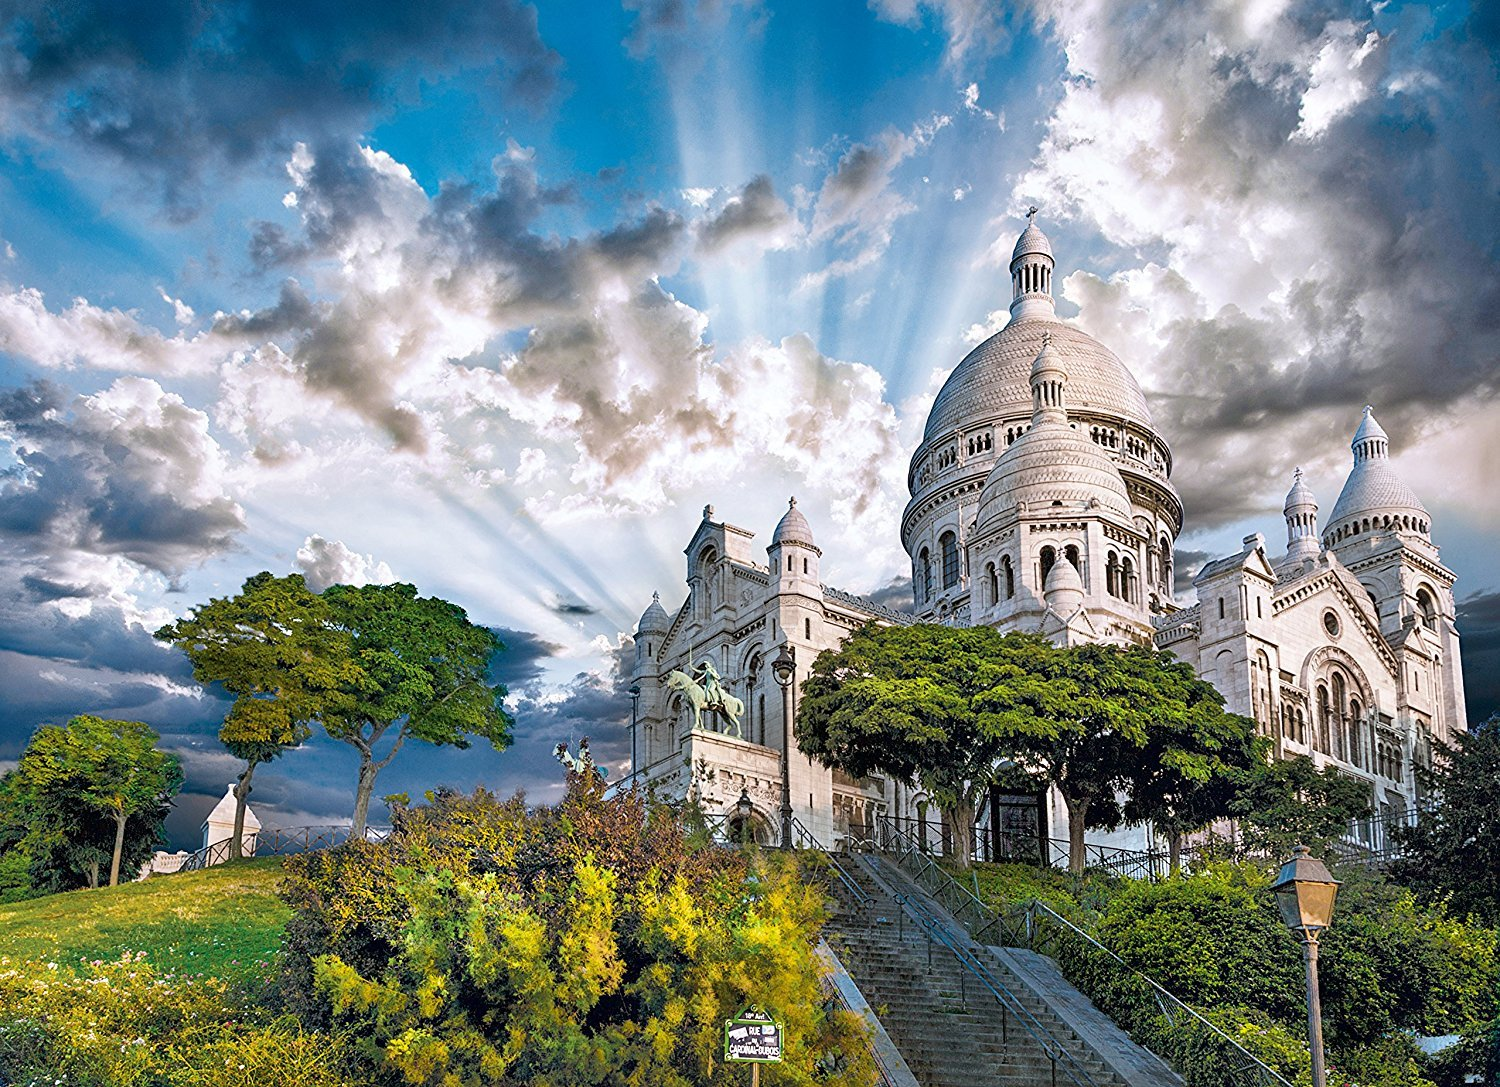 jigsaw puzzle Montmartre, Paris 1500 piece beautiful clementoi puzzle 393831 montmartre-paris-1000